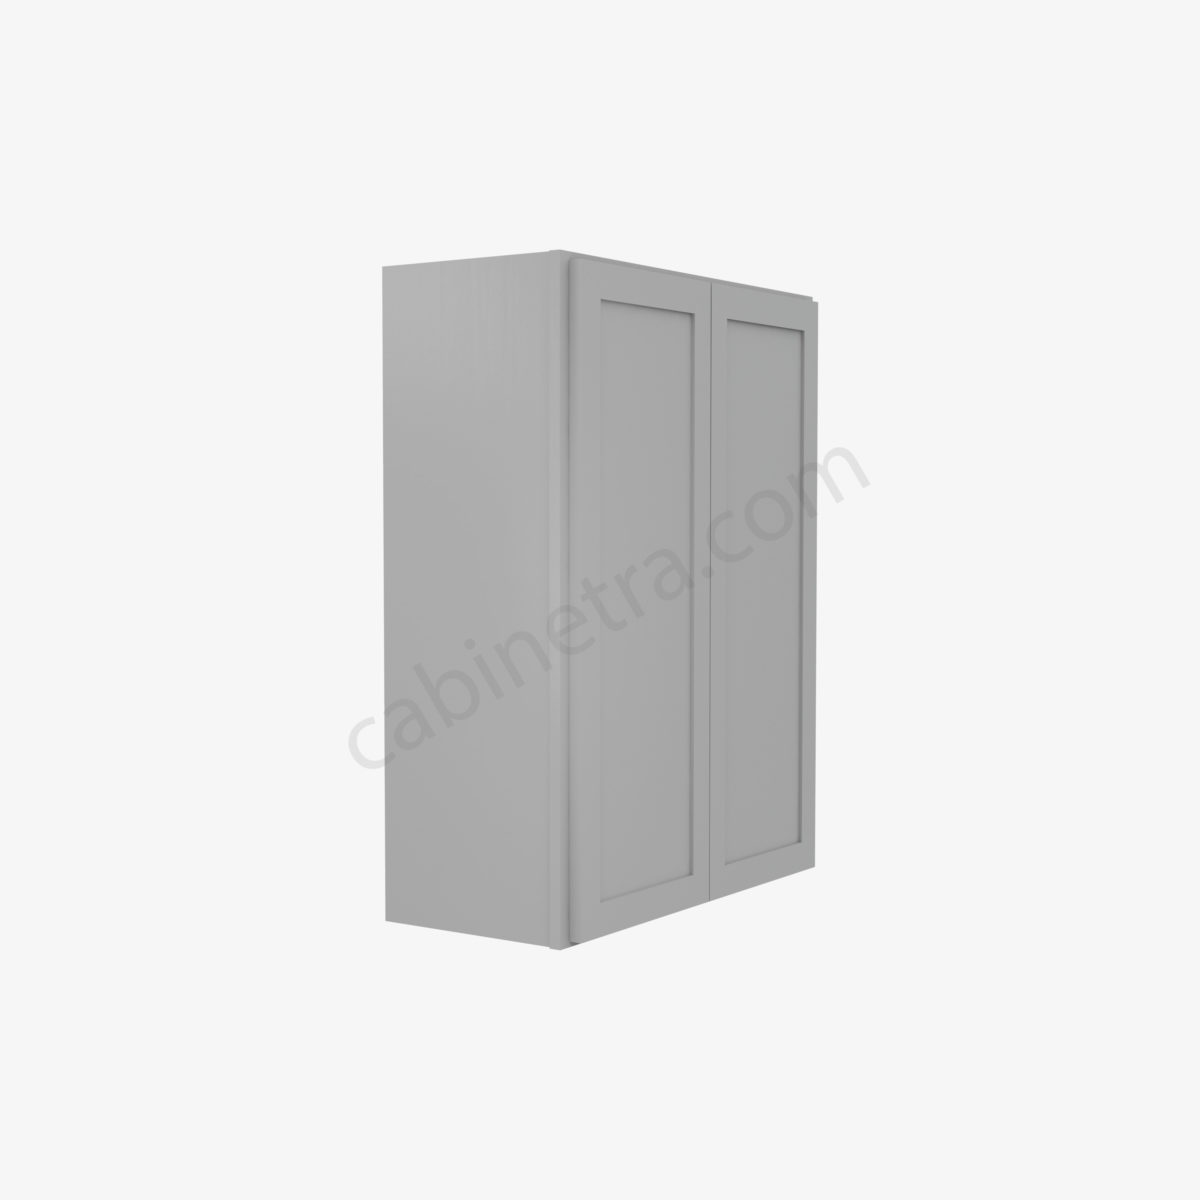 AB W2736B 4 Forevermark Lait Gray Shaker Cabinetra scaled